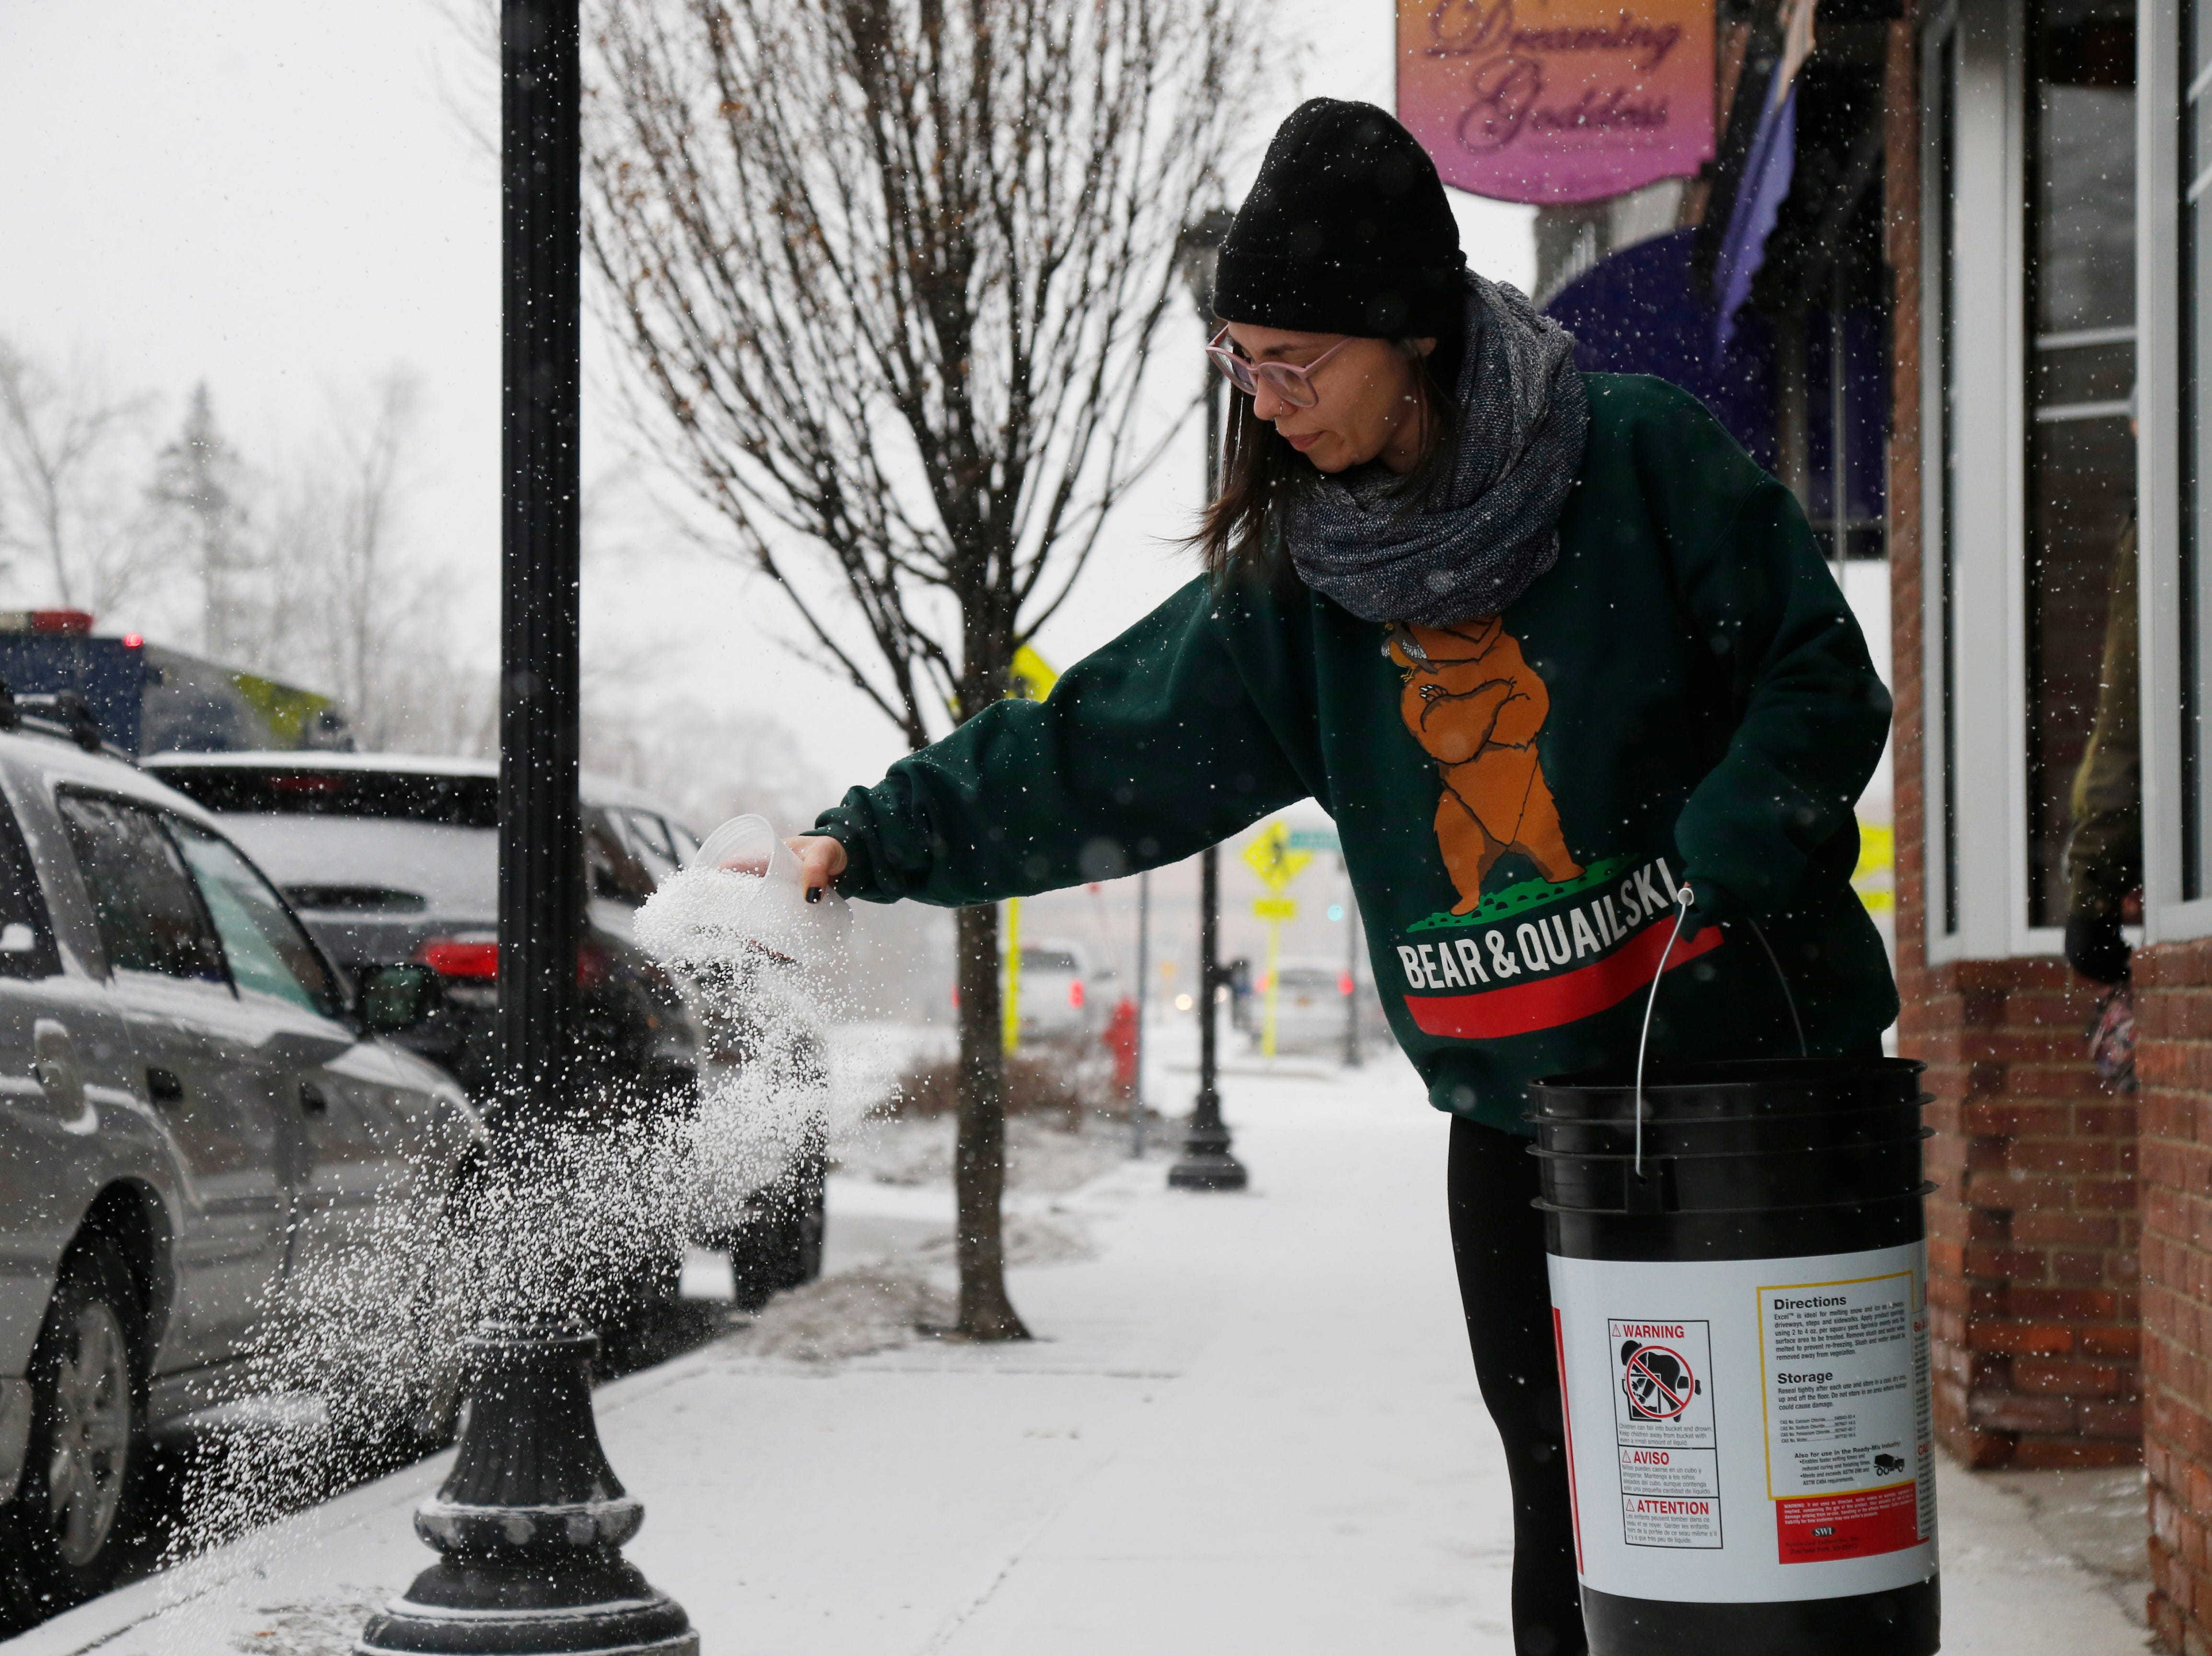 Angela Hernandez spreads ice melter to the sidewalk outside the Crafted Kup in the Arlington Business District of the Town of Poughkeepsie on February 12, 2019.